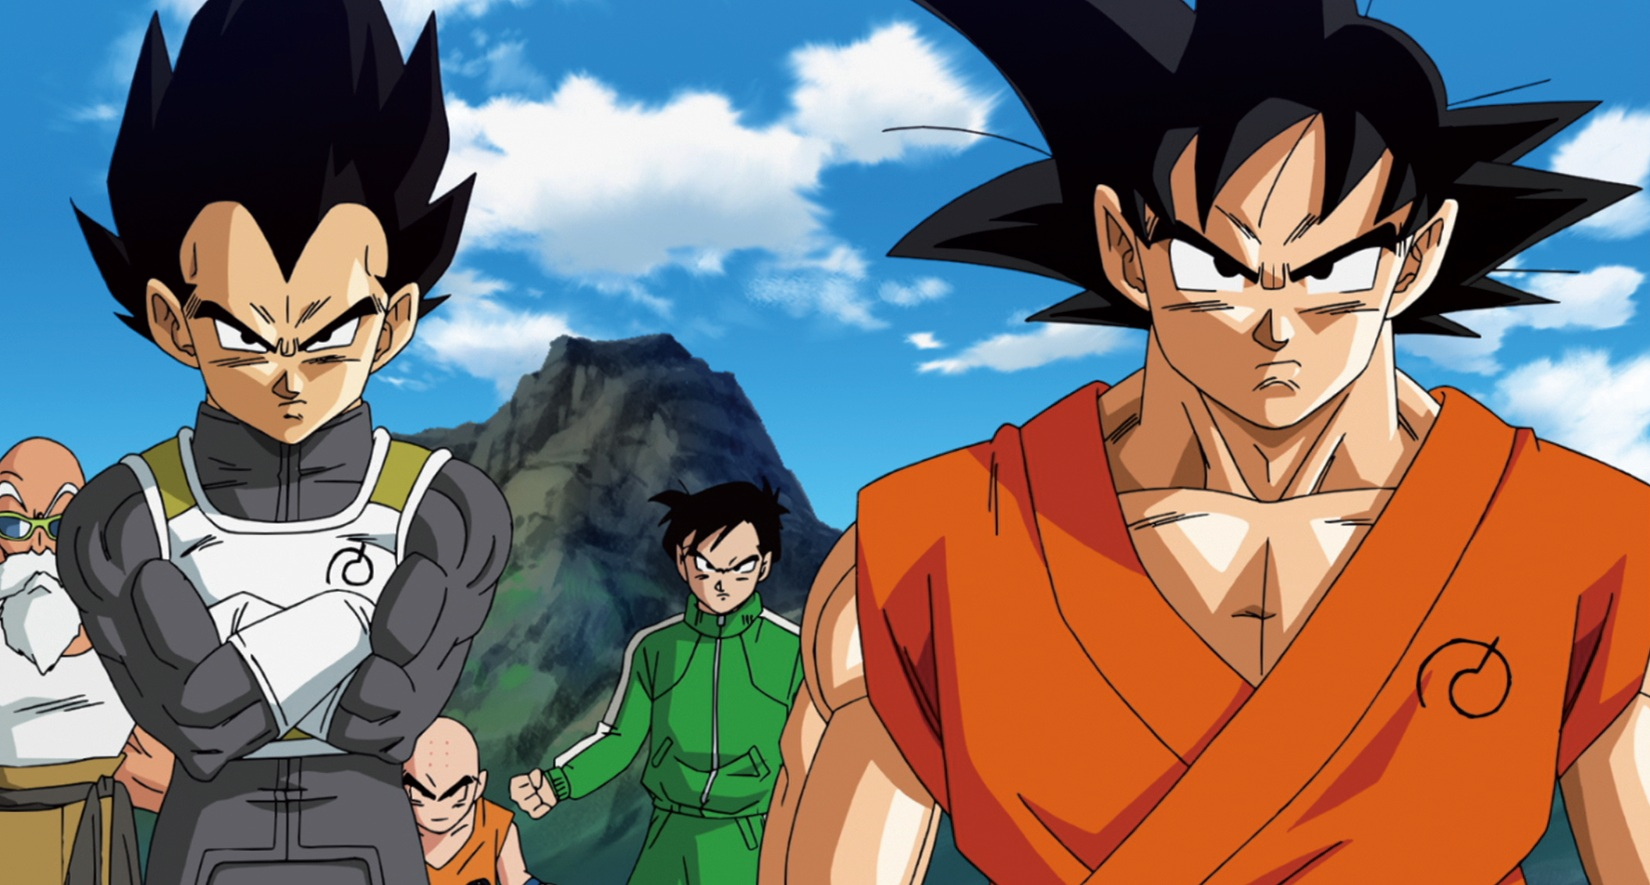 Fp anime dragon ball z 01